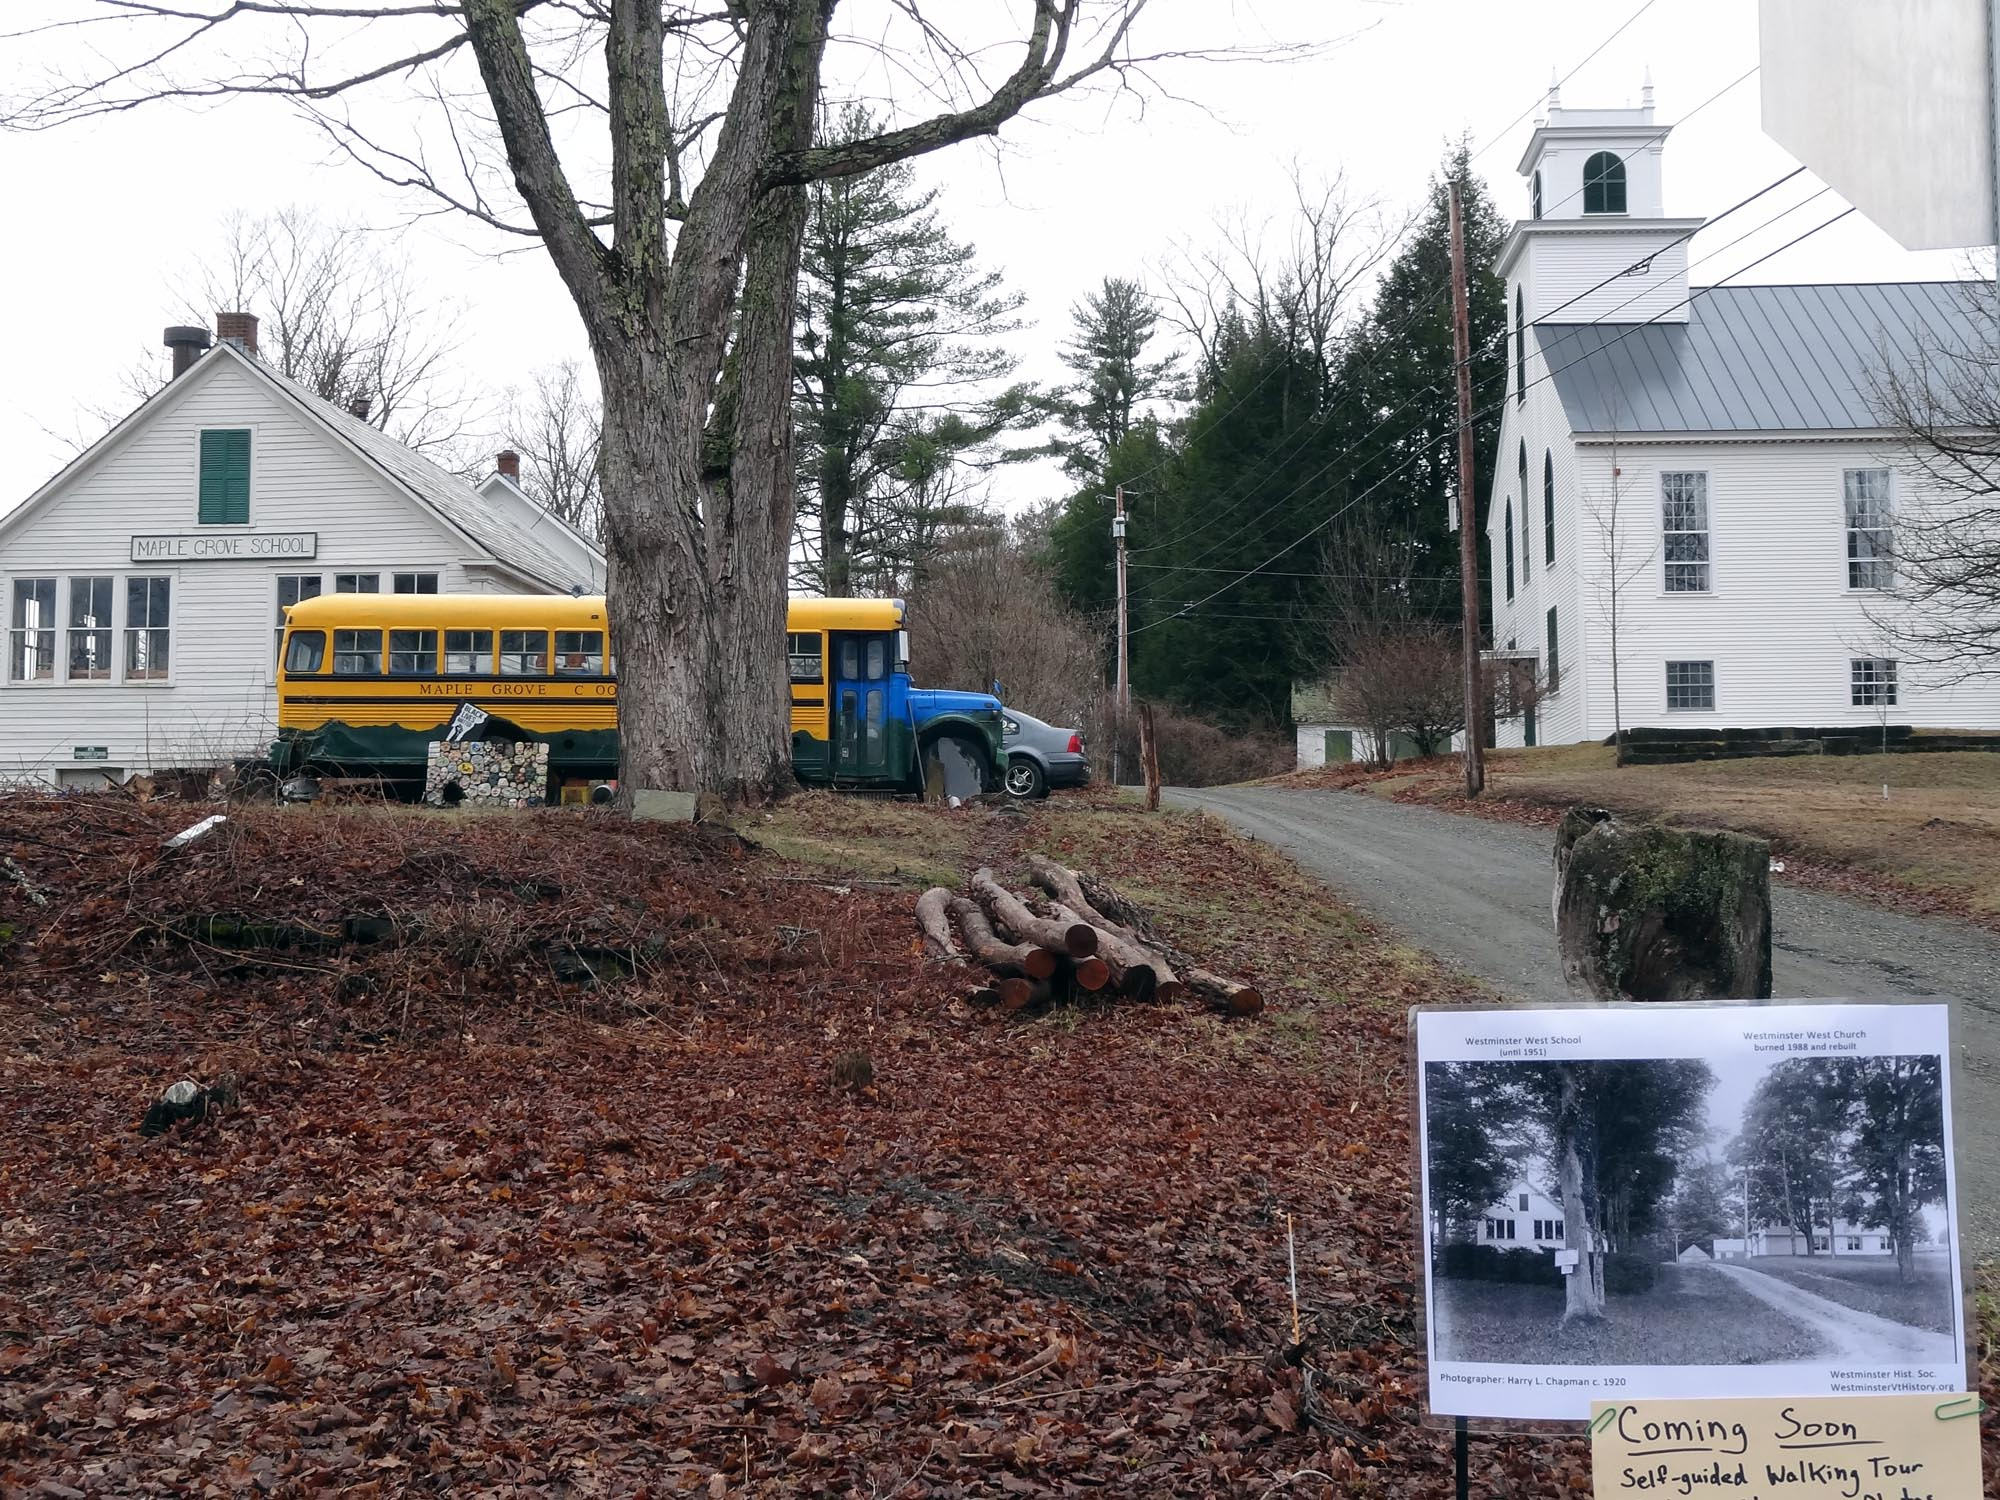 Westminster West Church and old schoolhouse shown in 2021 with the c1920 Harry Chapman photo displayed in foreground